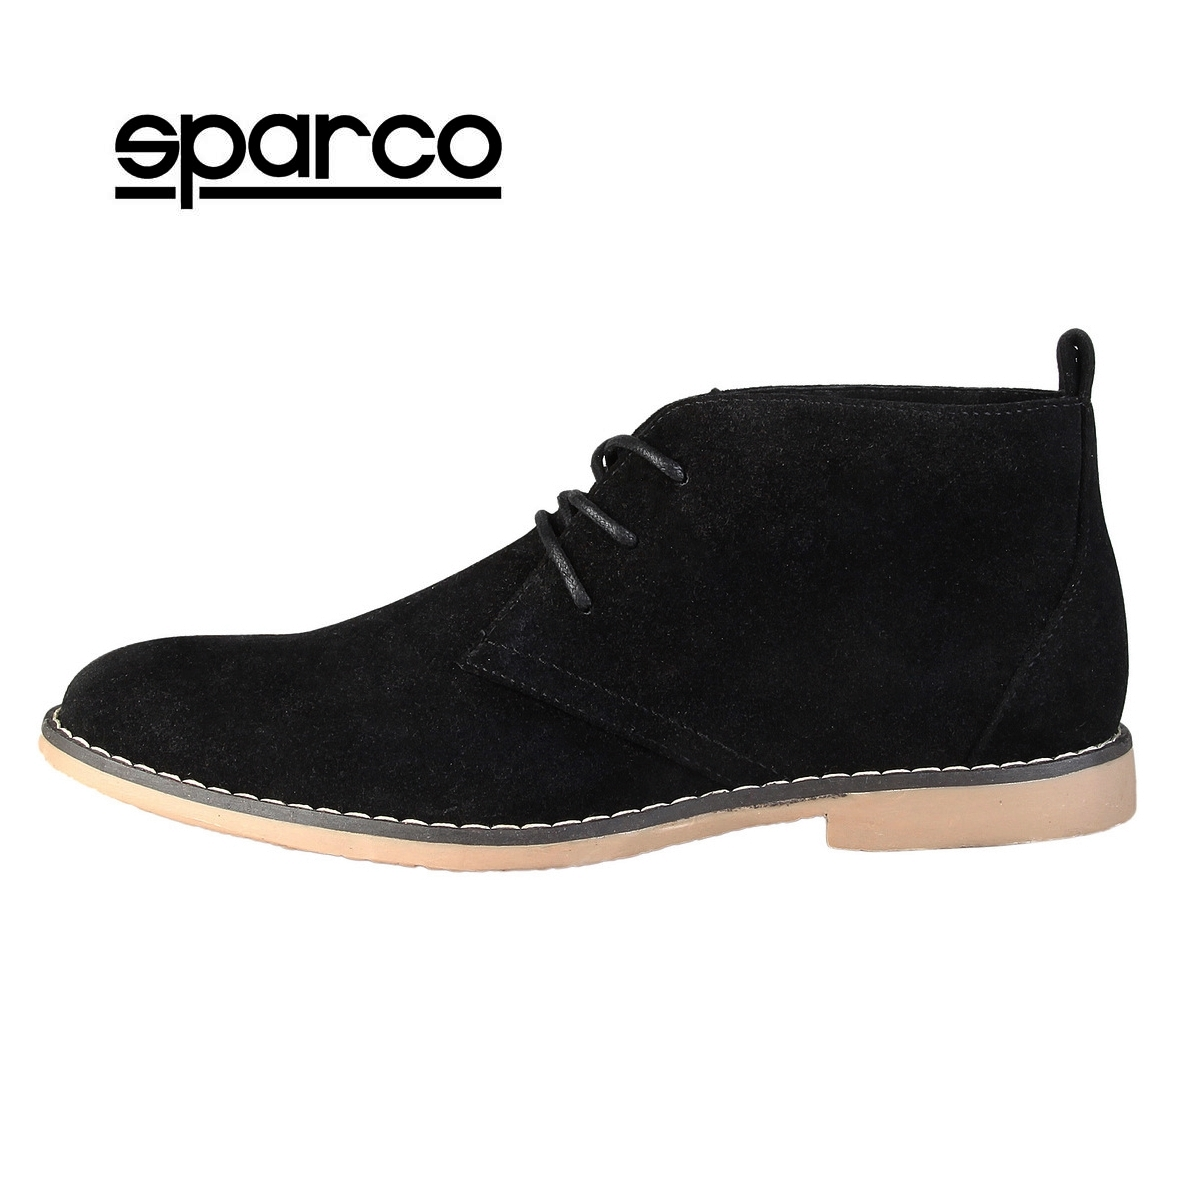 390ce3870d5 Details about NEW Sparco Mens Black Suede Ankle Boots Lace Up Chukka Desert  Shoes Sale